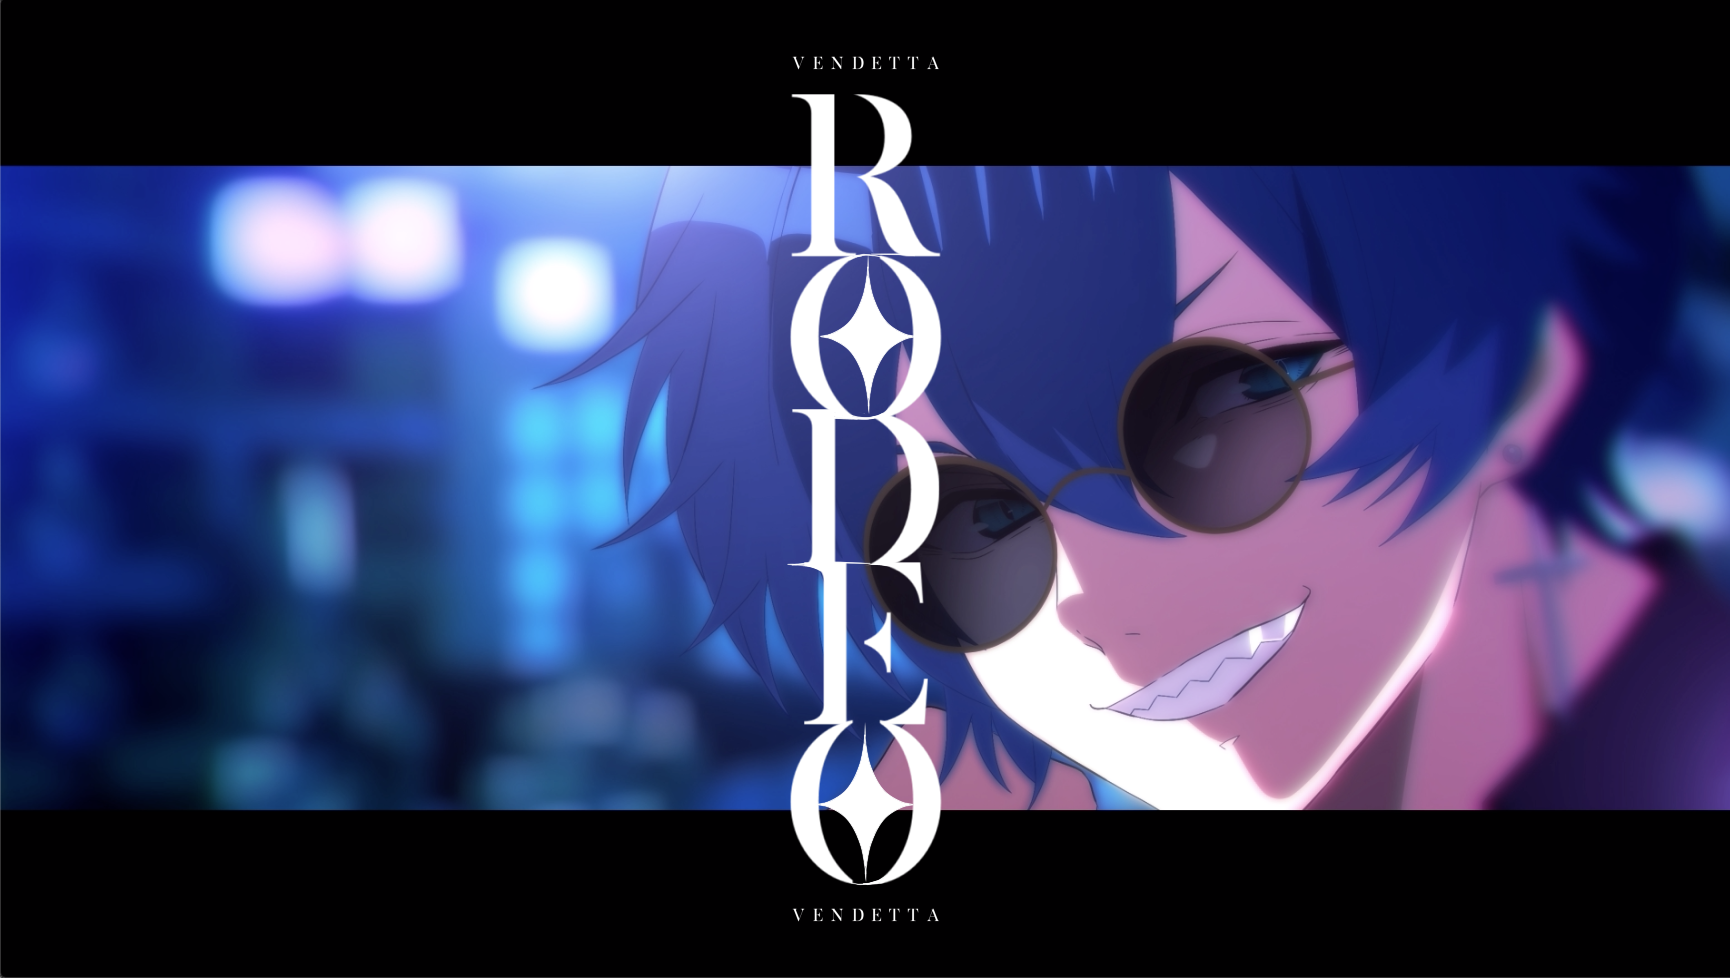 RODEO サムネイル.png